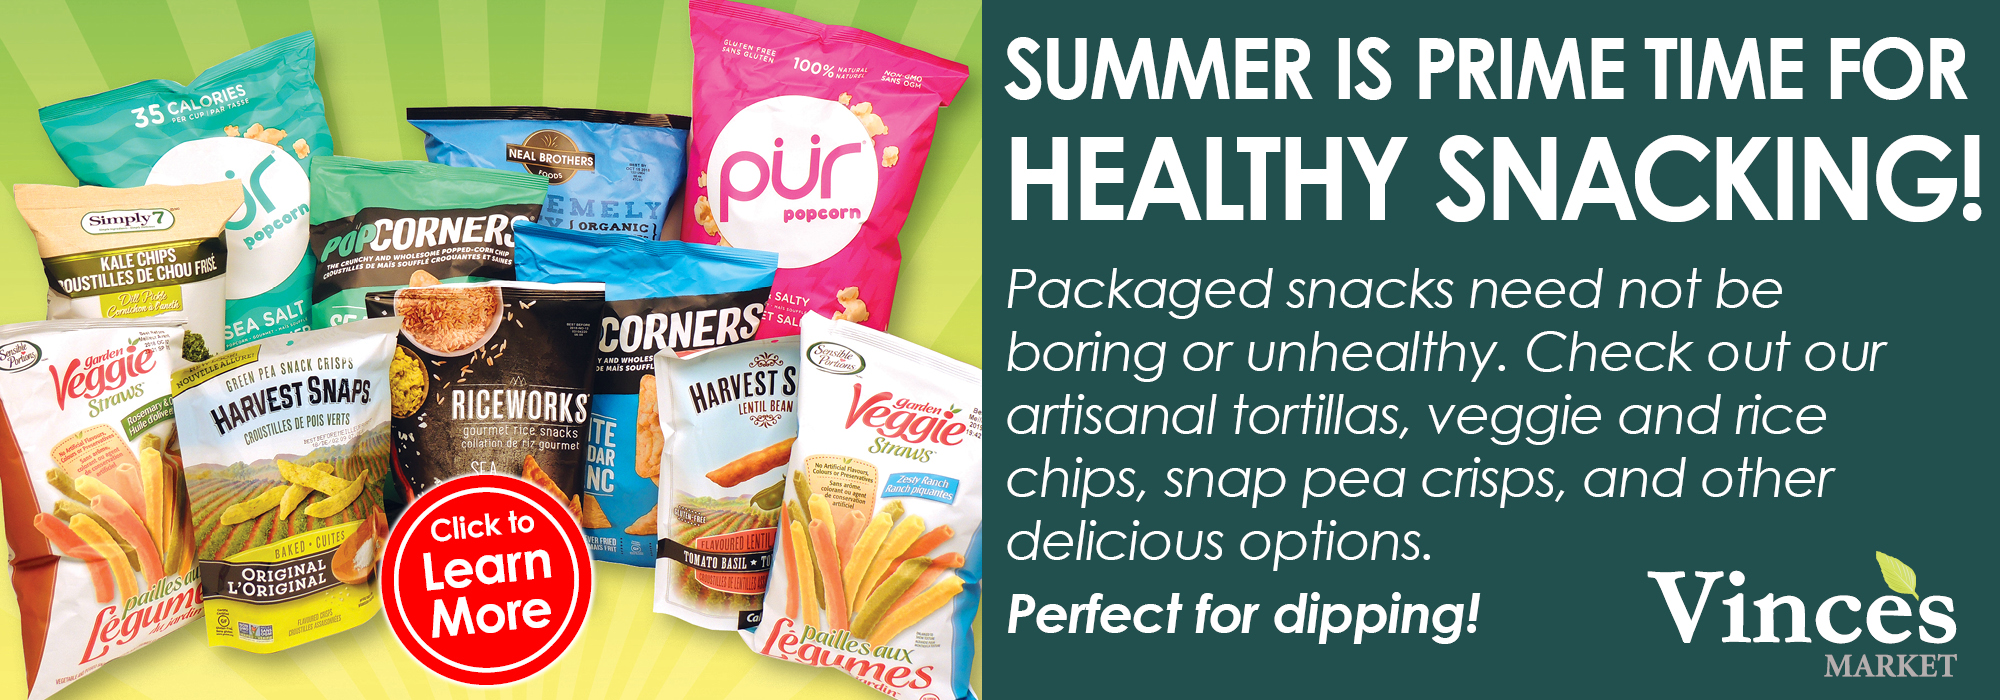 Healthier Snack Options - Gluten Free, Non-GMO, Dairy-Free, Sugar-Free, Baked Snacks